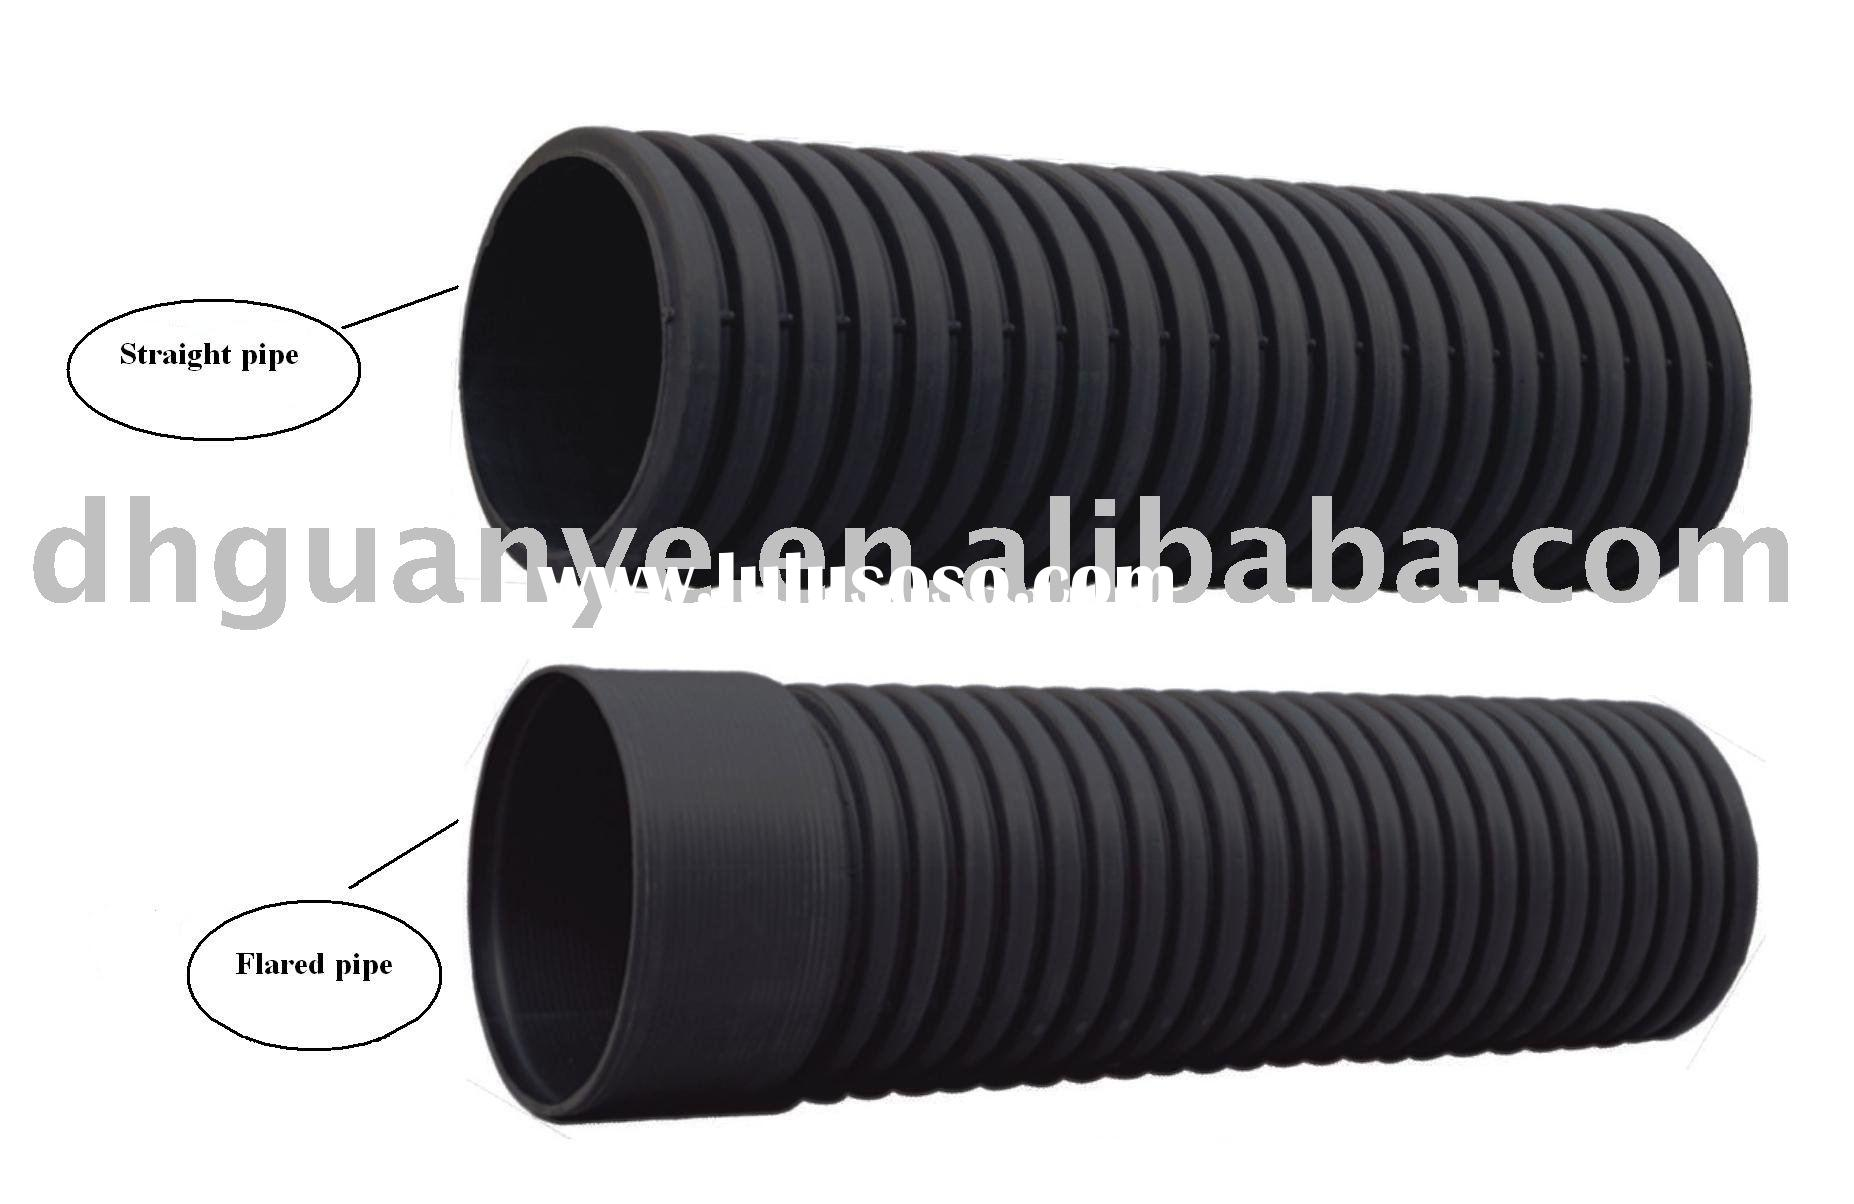 High density PE double wall corrugated pipe